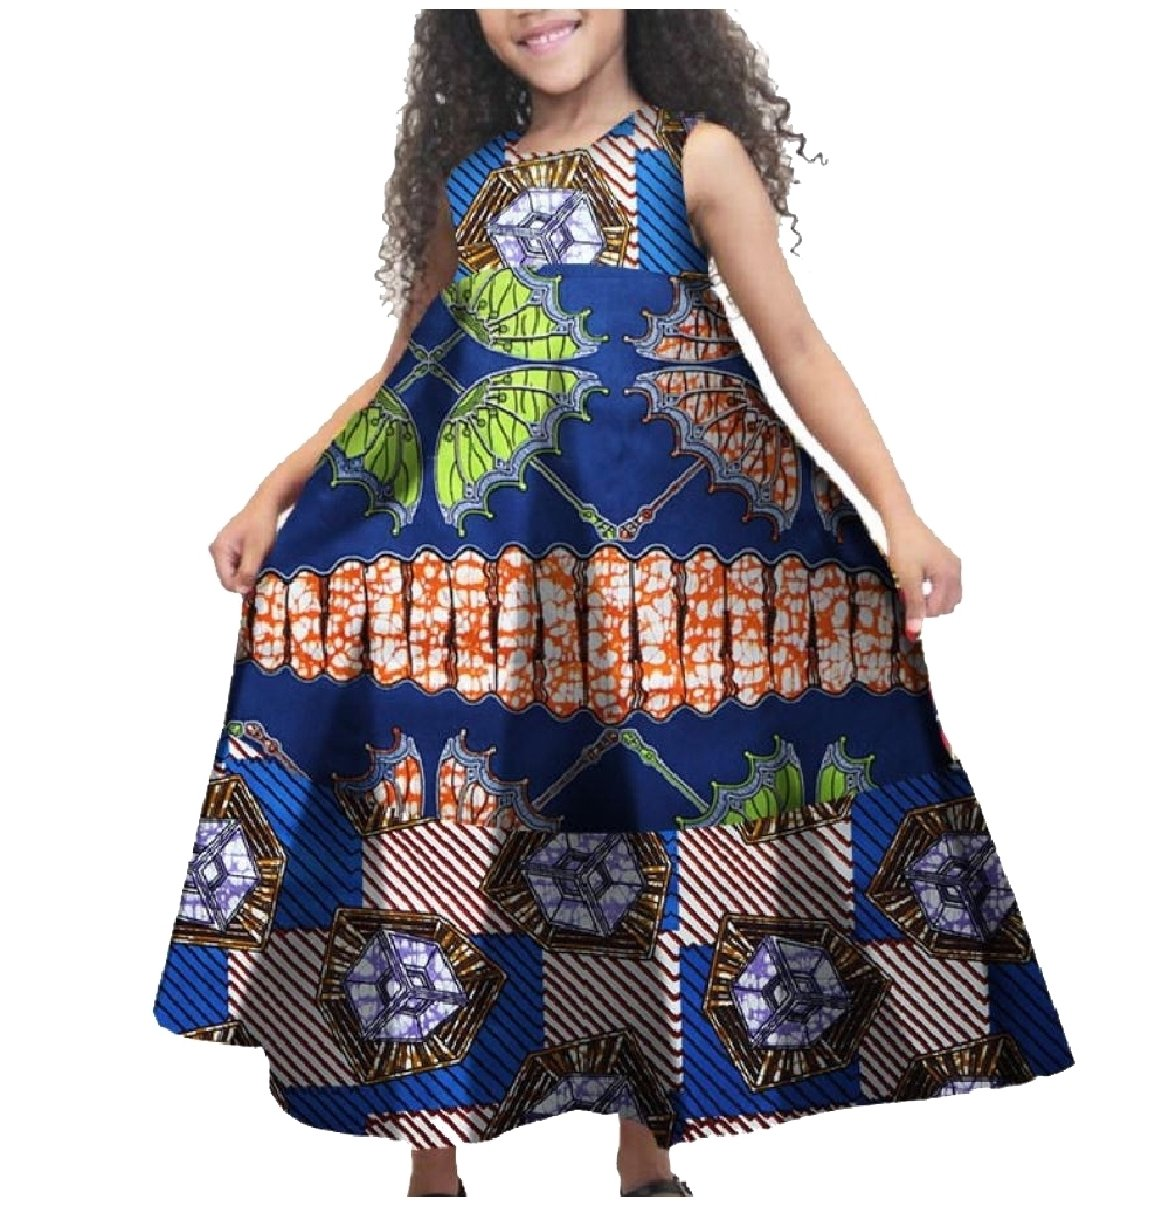 XQS Big Little Girl Fine Cotton African Printed Sleeveless Dresses Dark Blue XXL by XQS (Image #1)